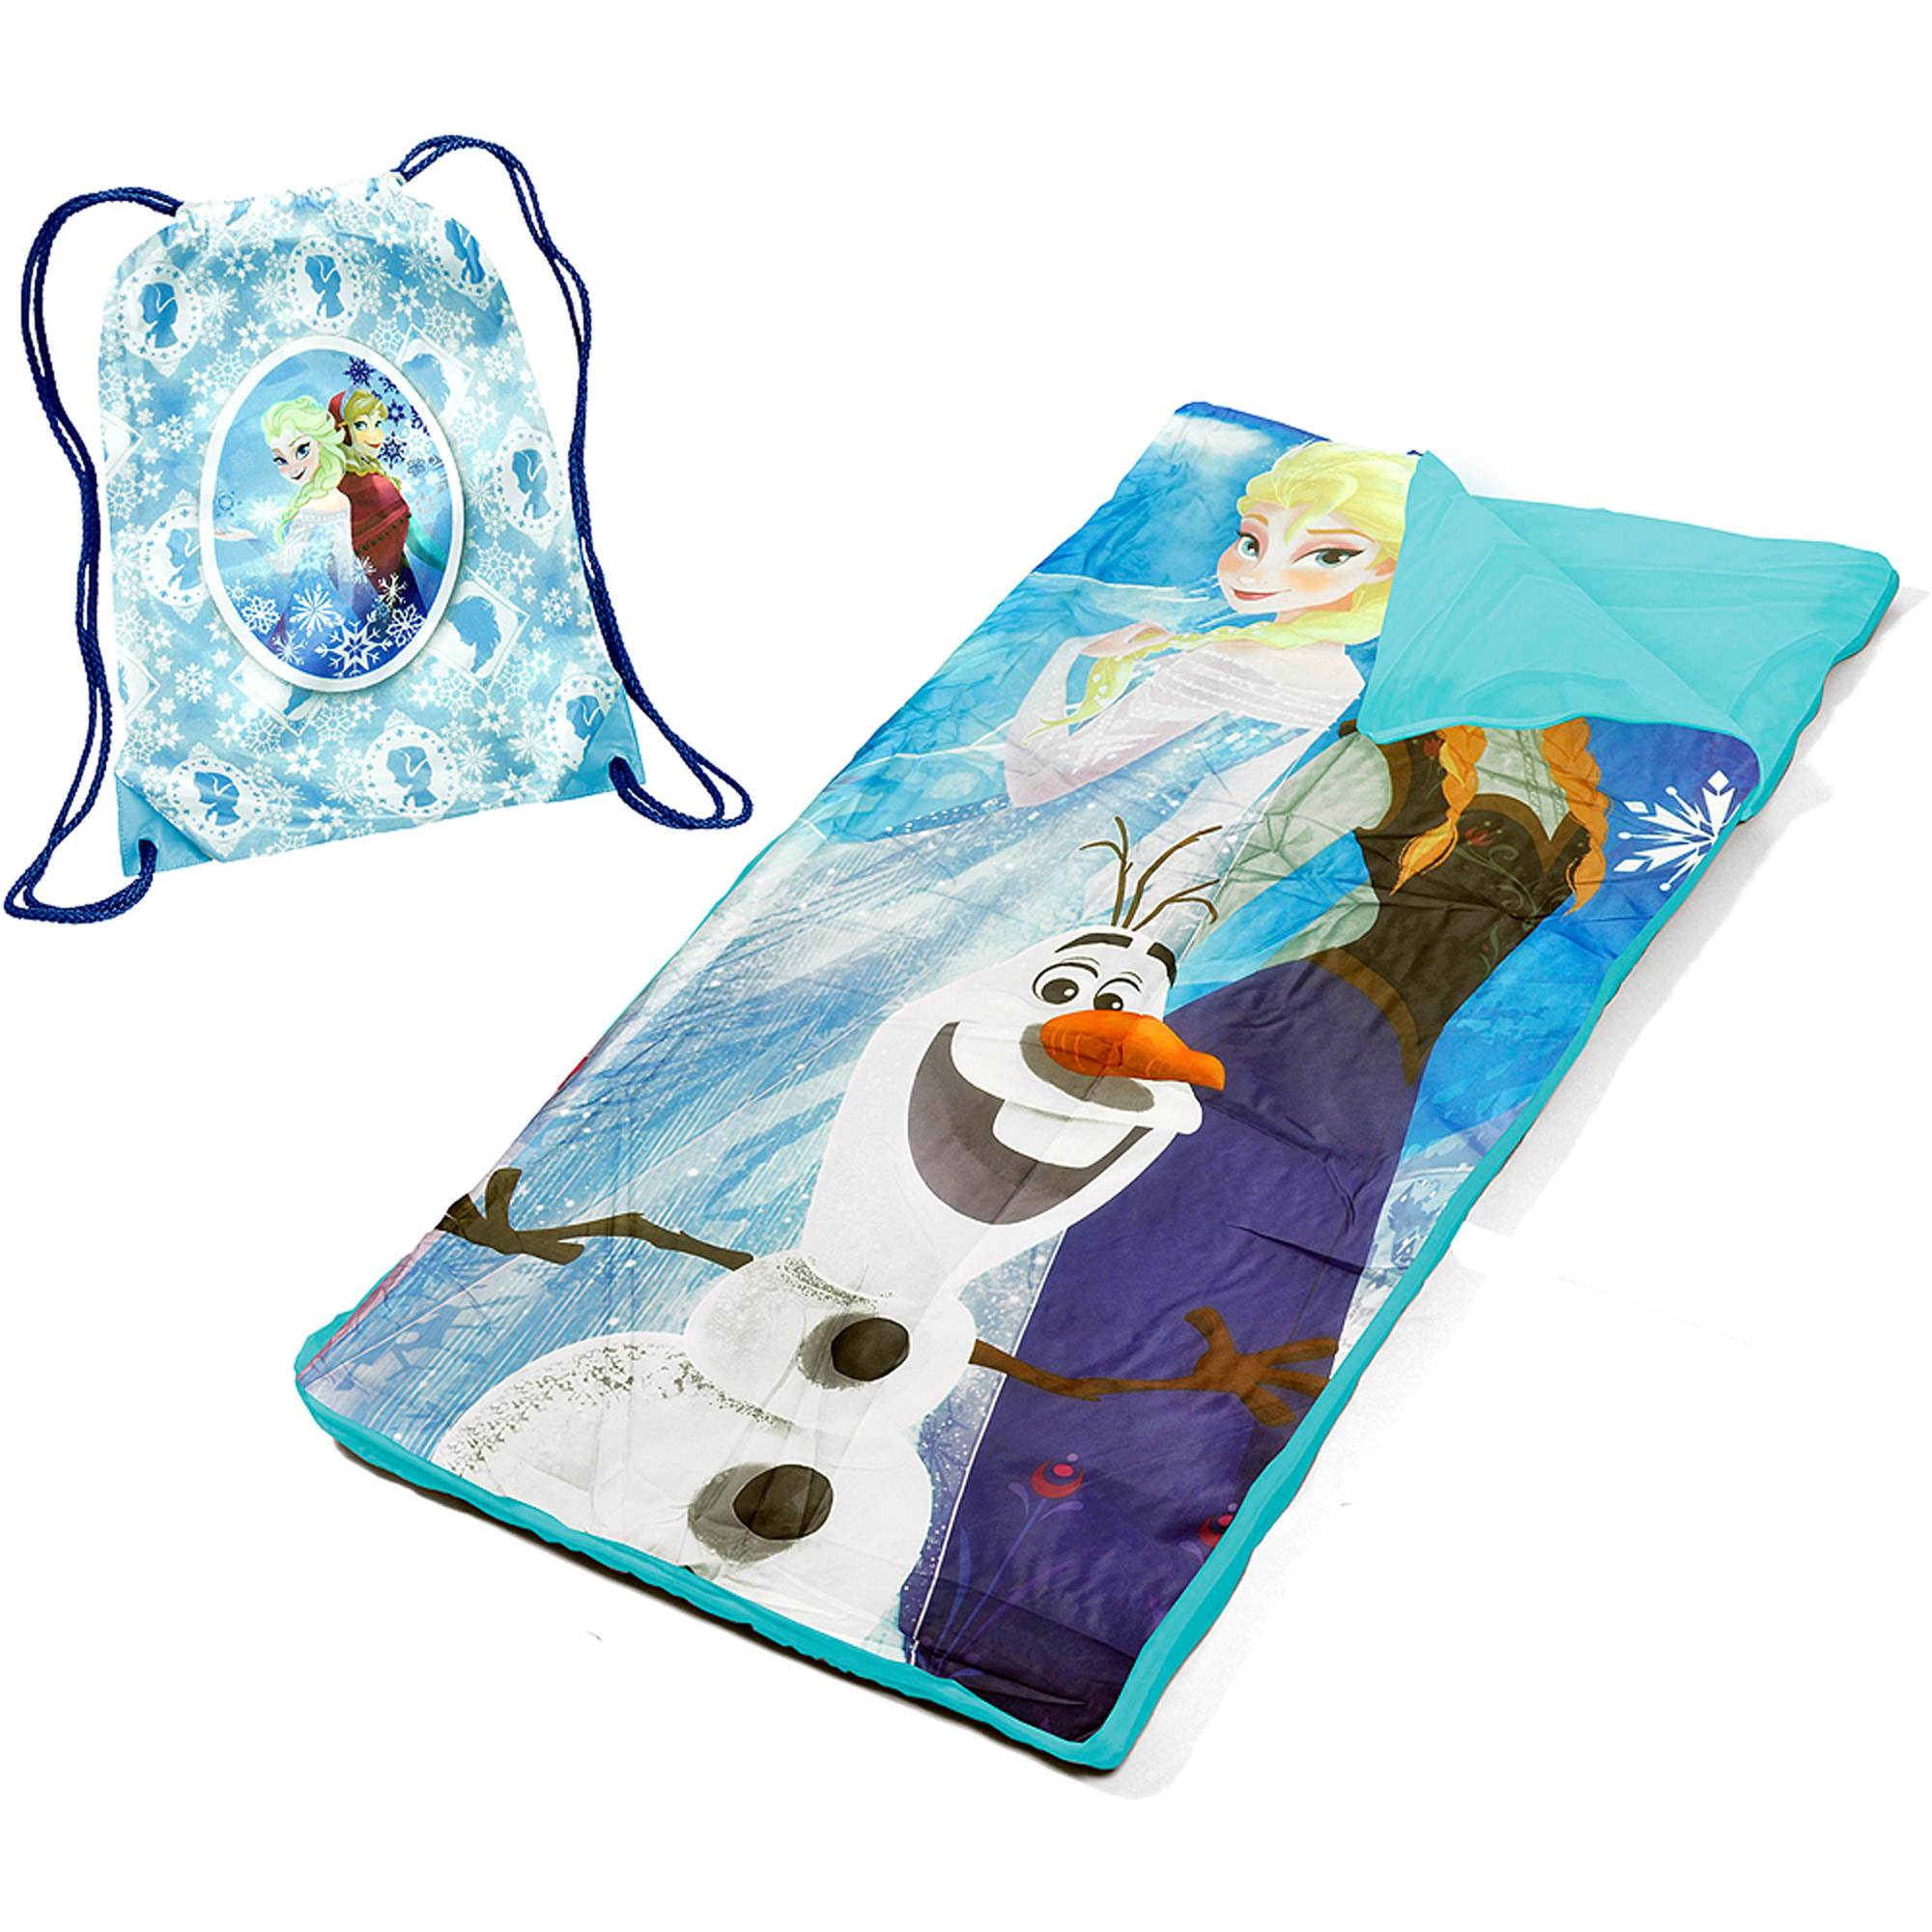 Disney Frozen Slumber Set Nap Mat with BONUS Sling Bag